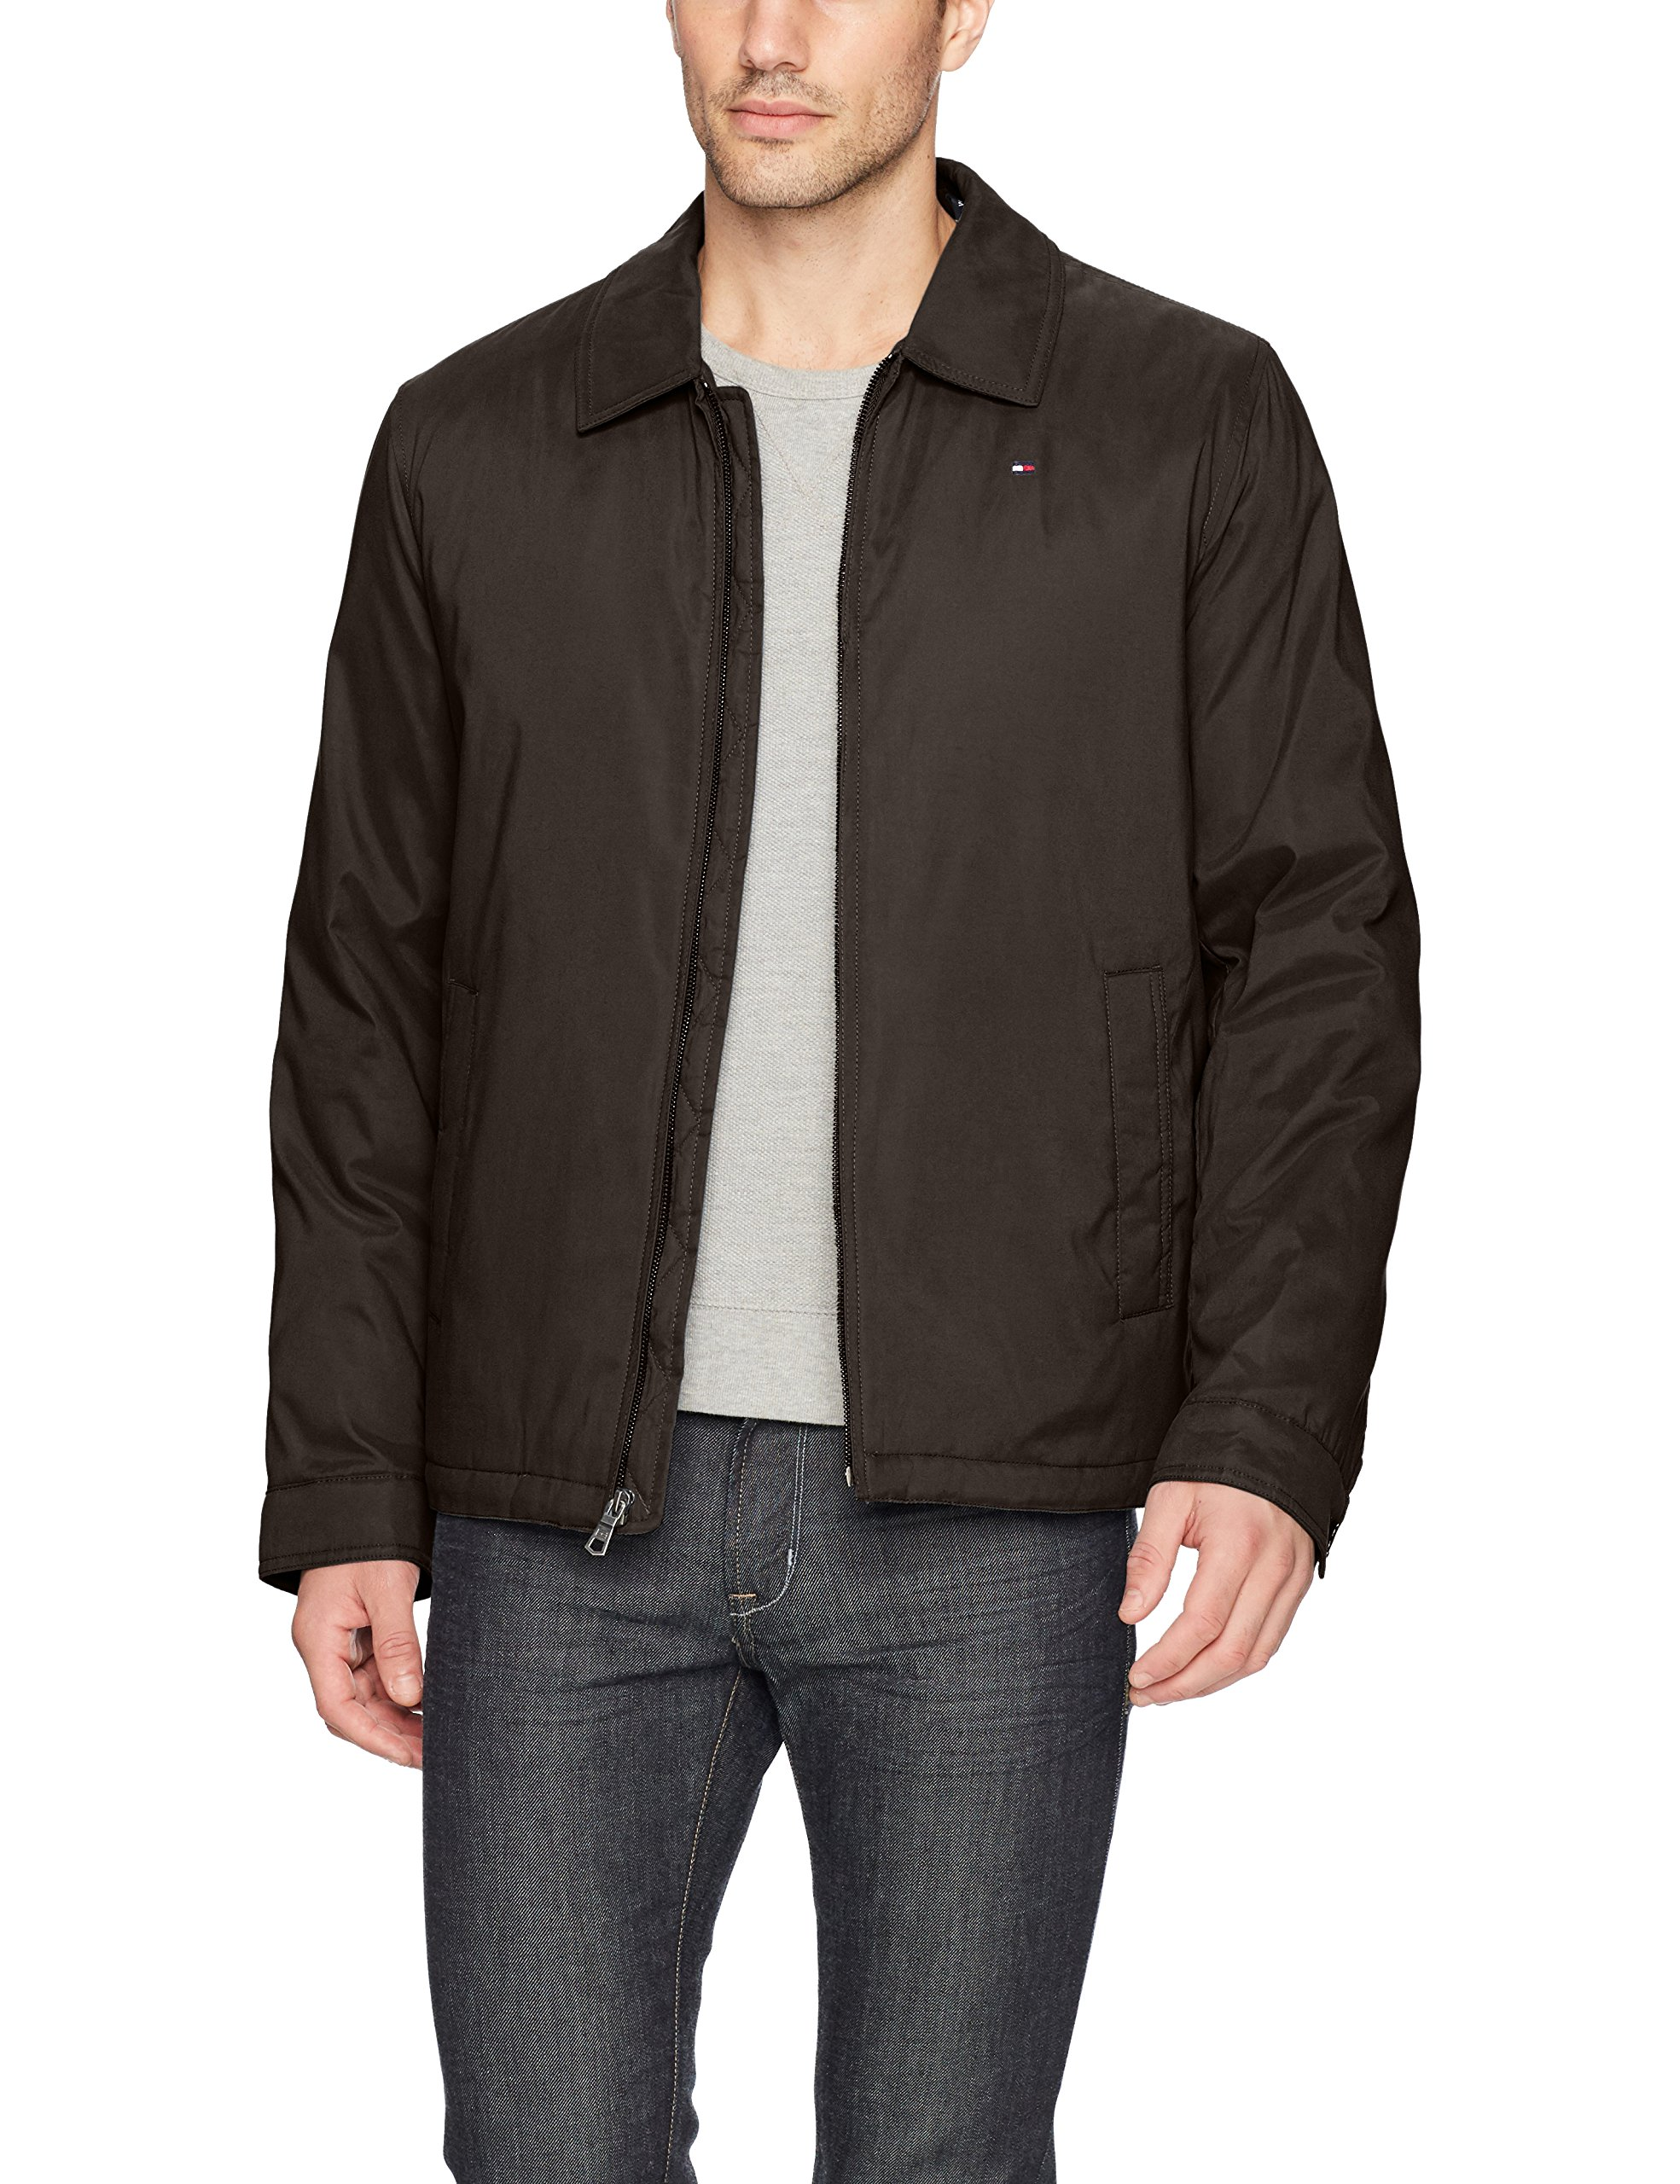 Tommy Hilfiger Men's Micro-Twill Open-Bottom Zip-Front Jacket, Dark Brown, Large by Tommy Hilfiger